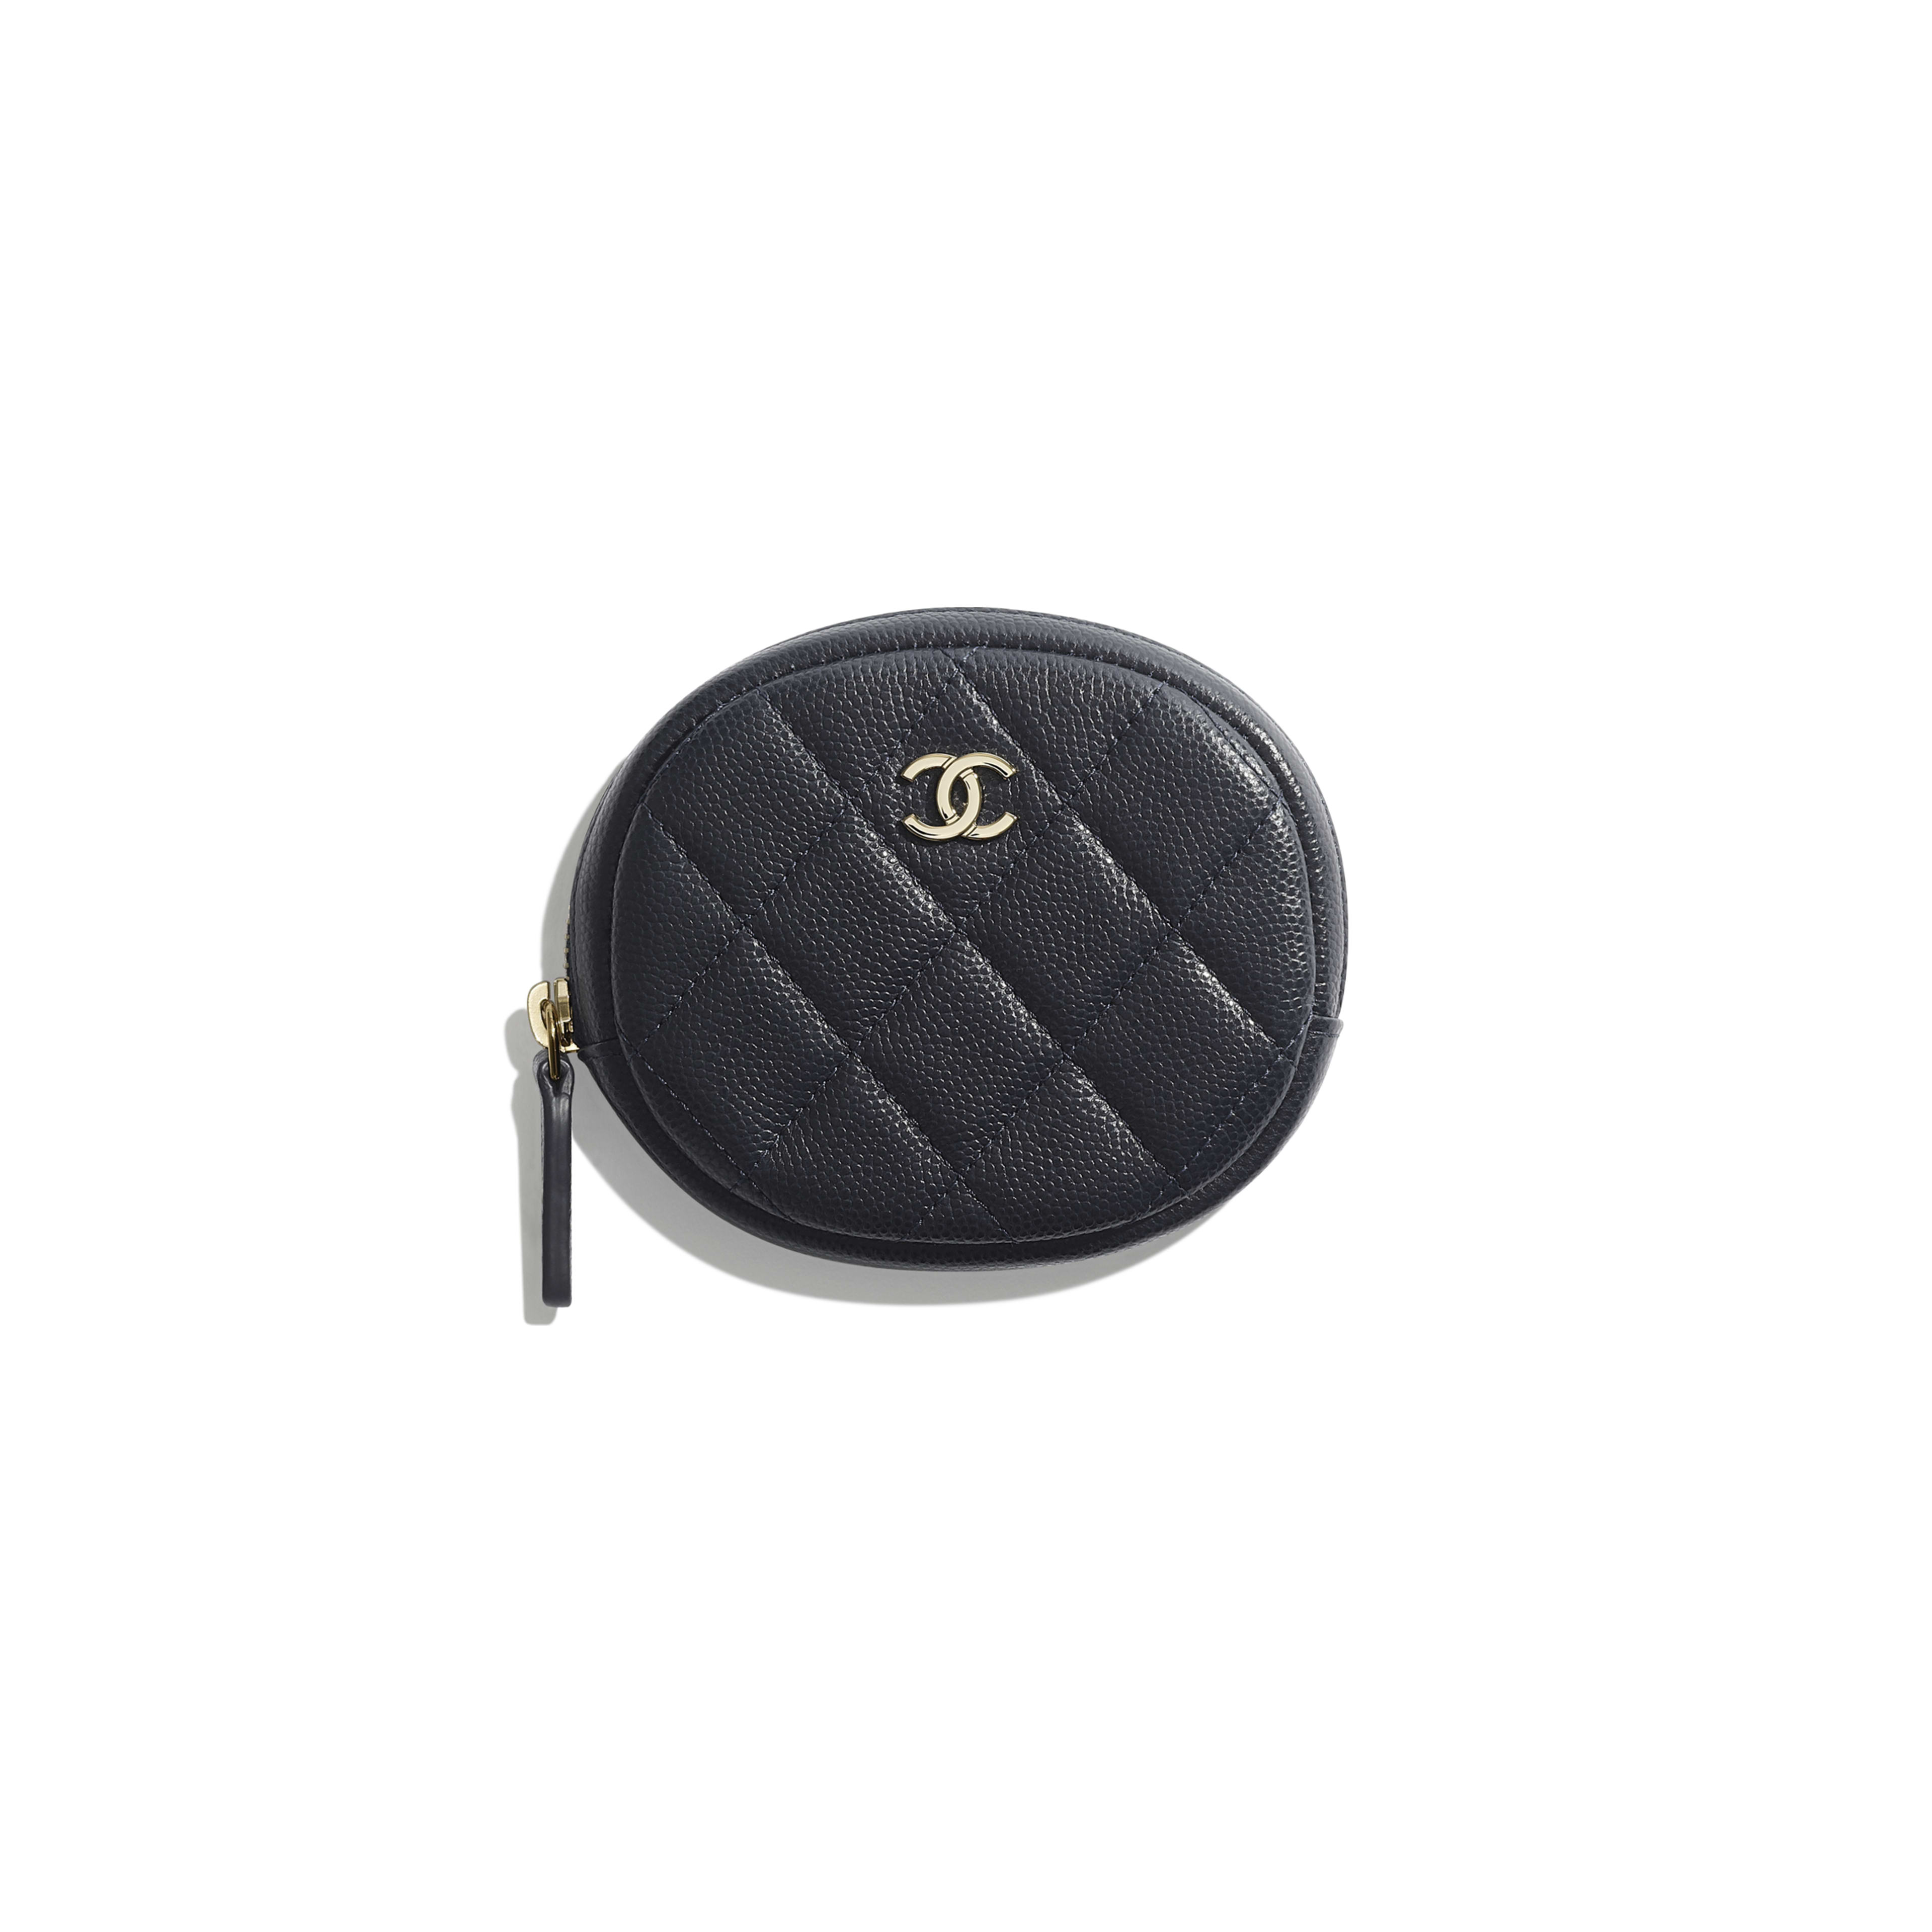 Classic Zipped Coin Purse - Navy Blue - Grained Calfskin & Gold-Tone Metal - Default view - see full sized version